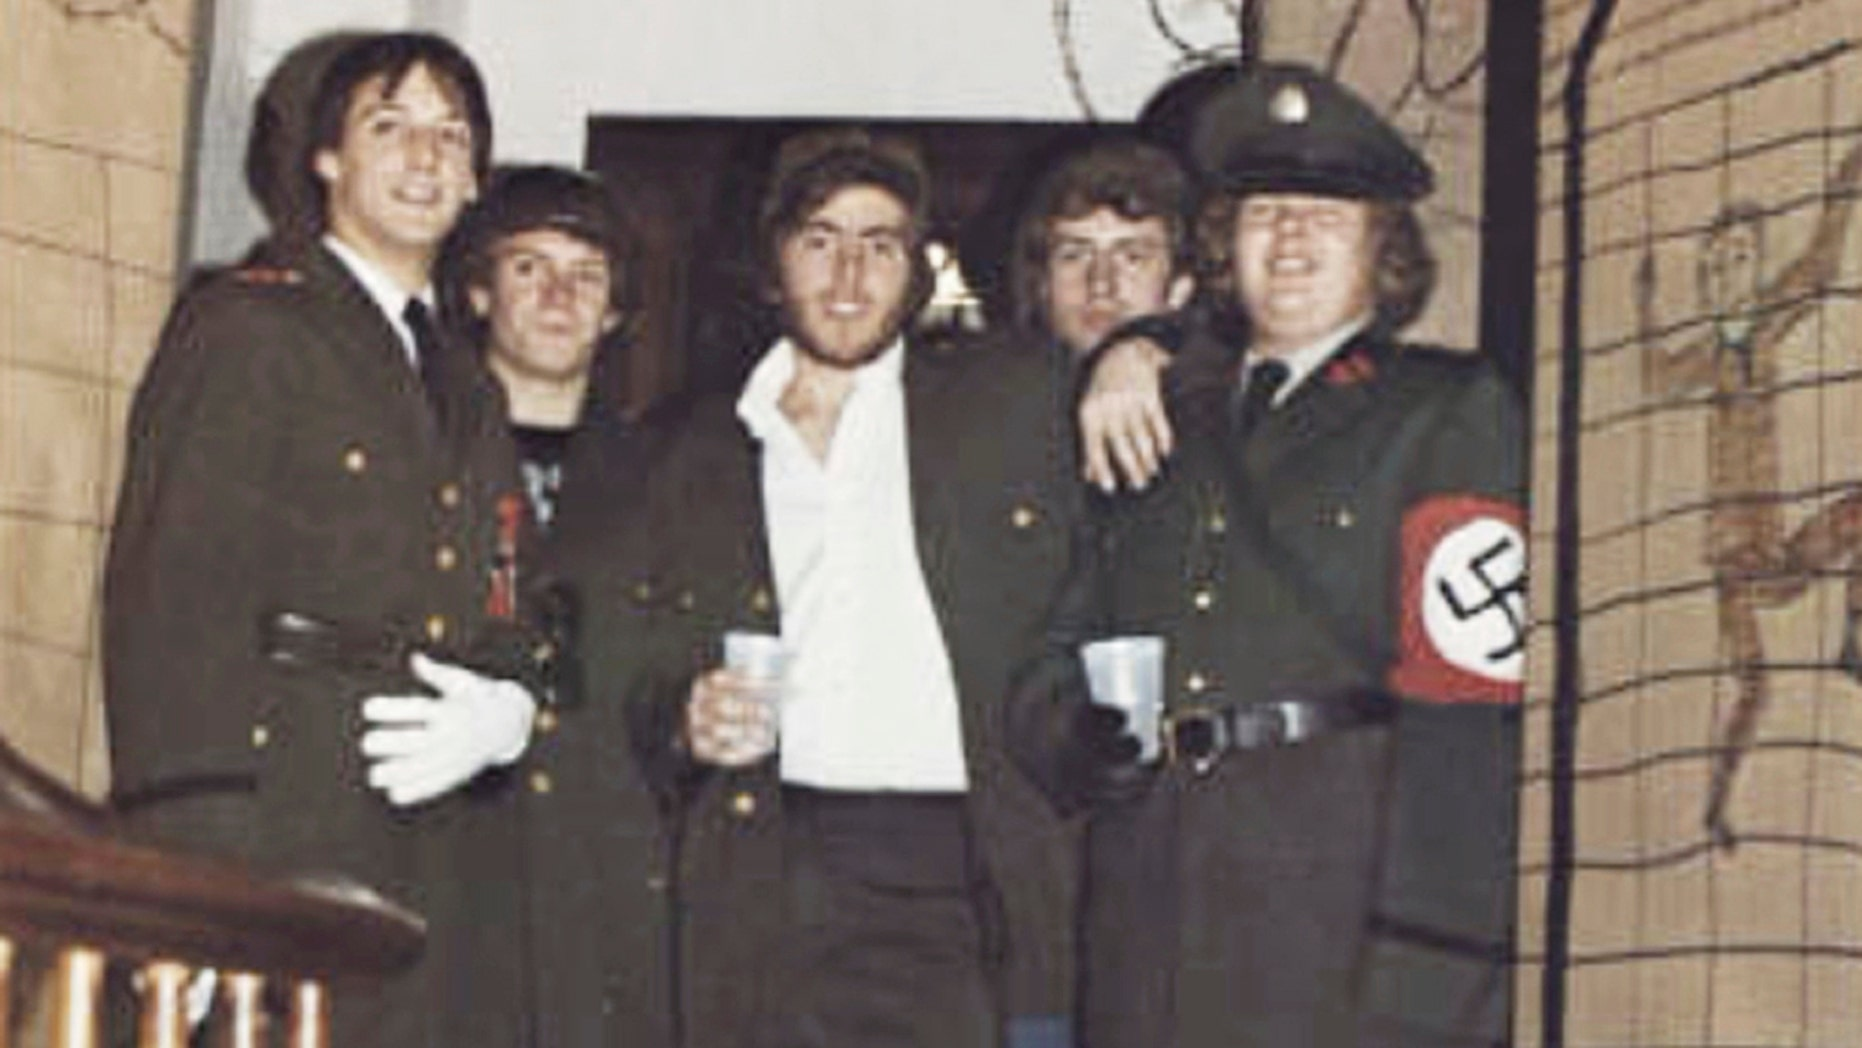 In this photo from the 1980 edition of Spectrum, the Gettysburg College yearbook, Bob Garthwait, right, wears a costume that depicts a Nazi uniform at a fraternity event. Garthwait, a financial donor and college trustee, apologized and announced his resignation from the board of trustees Tuesday, Feb. 19, 2019. (Spectrum/Gettysburg College via AP)